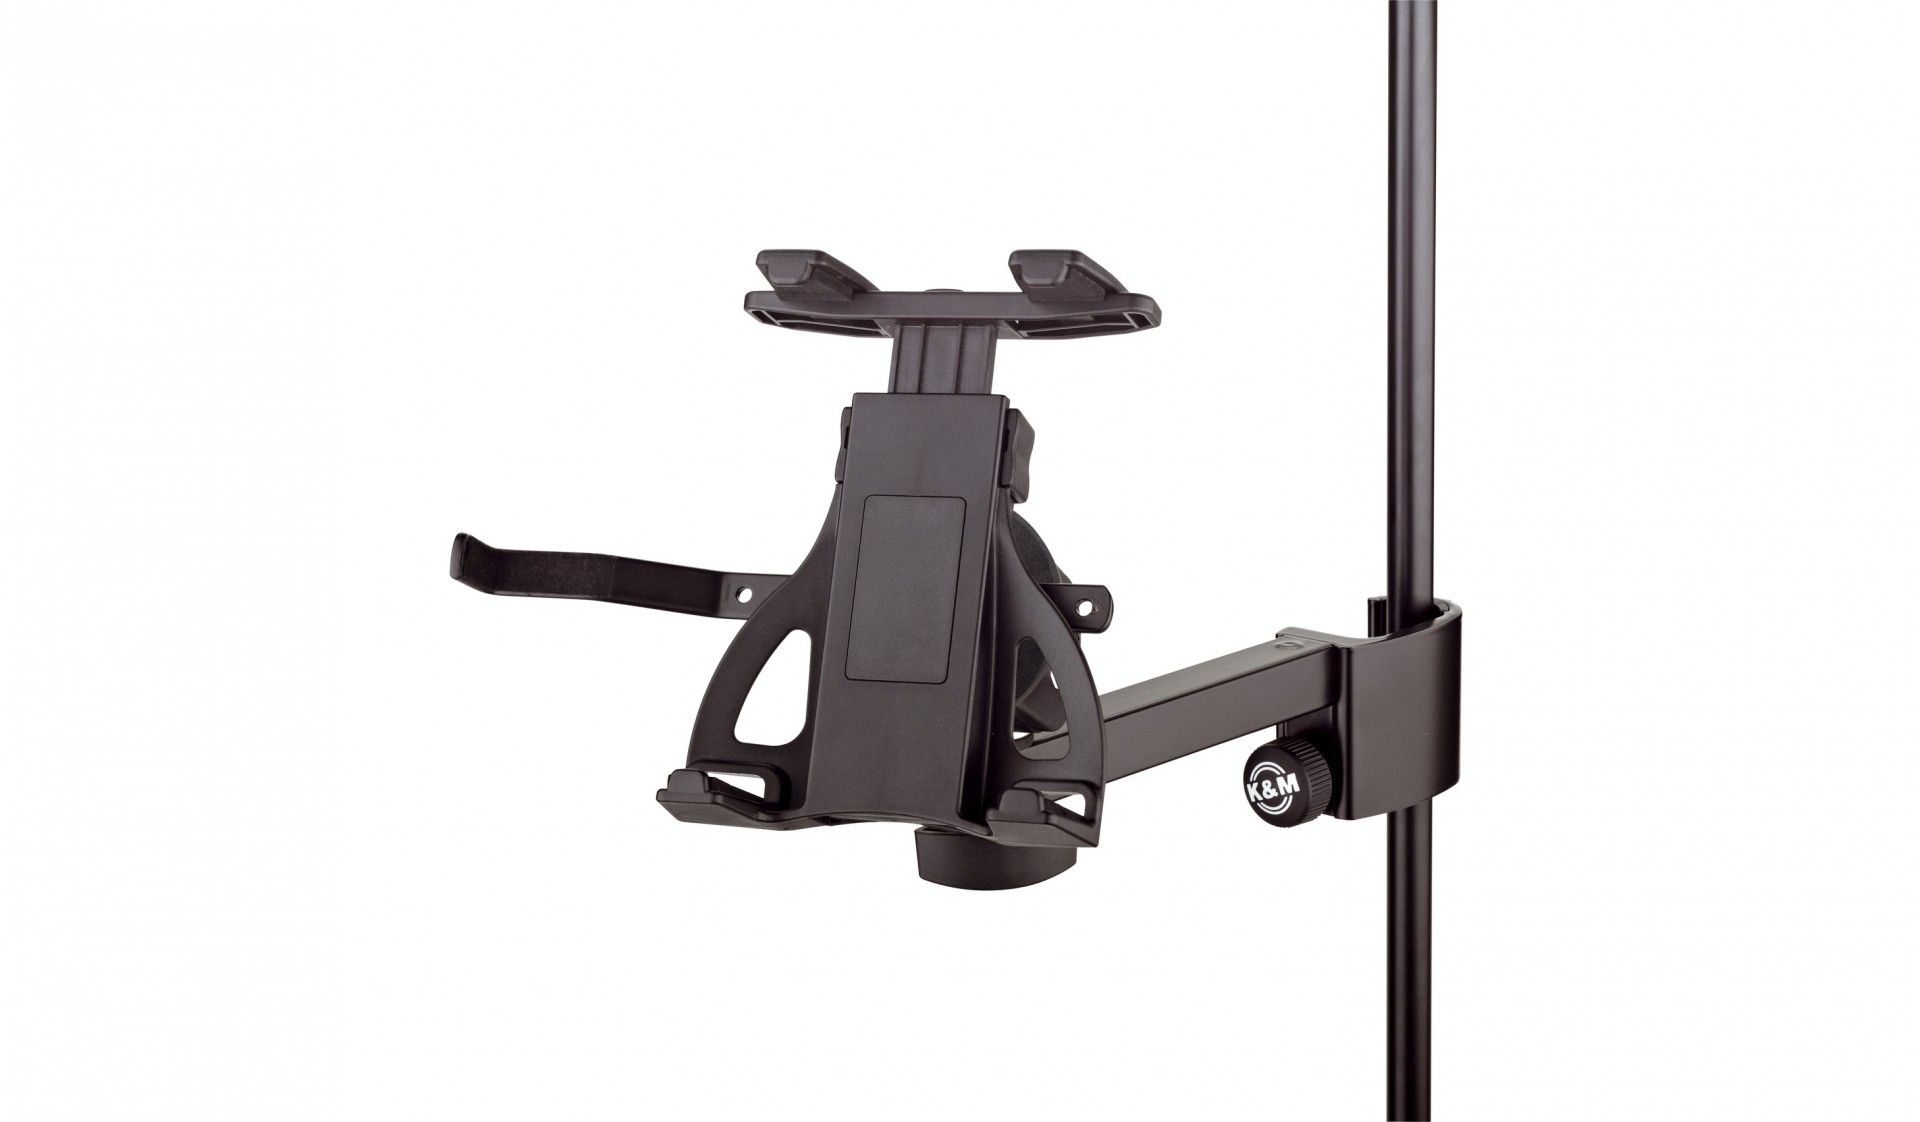 K&M 19740 Tablet PC holder - black